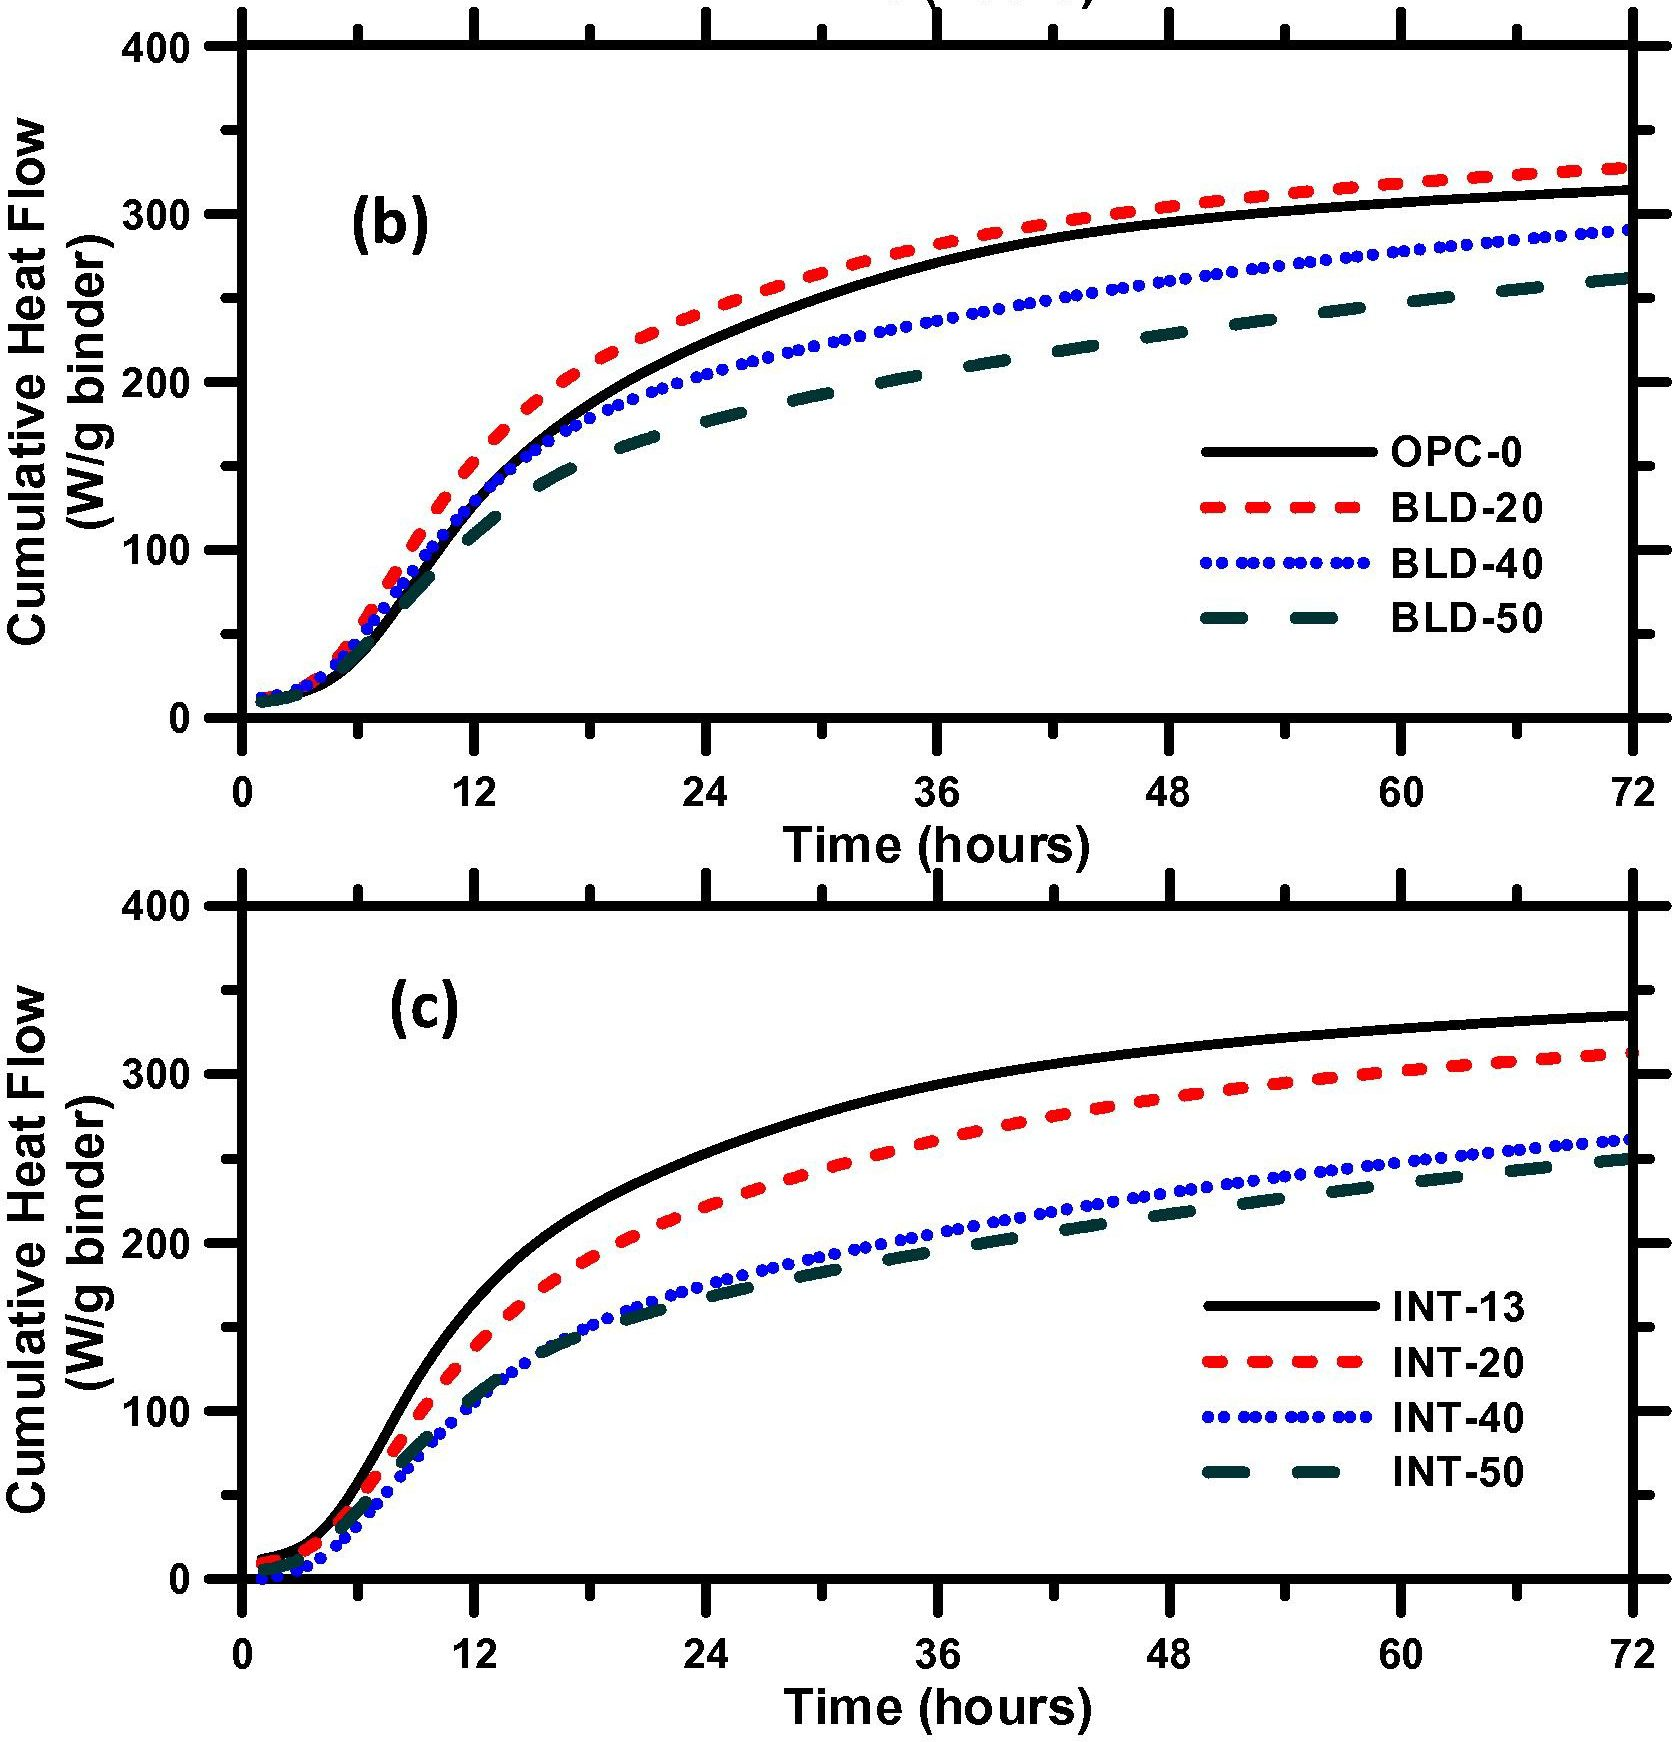 hight resolution of the study paves the way for development of multiple material binders containing higher levels of cement replacement that demonstrate early and later age